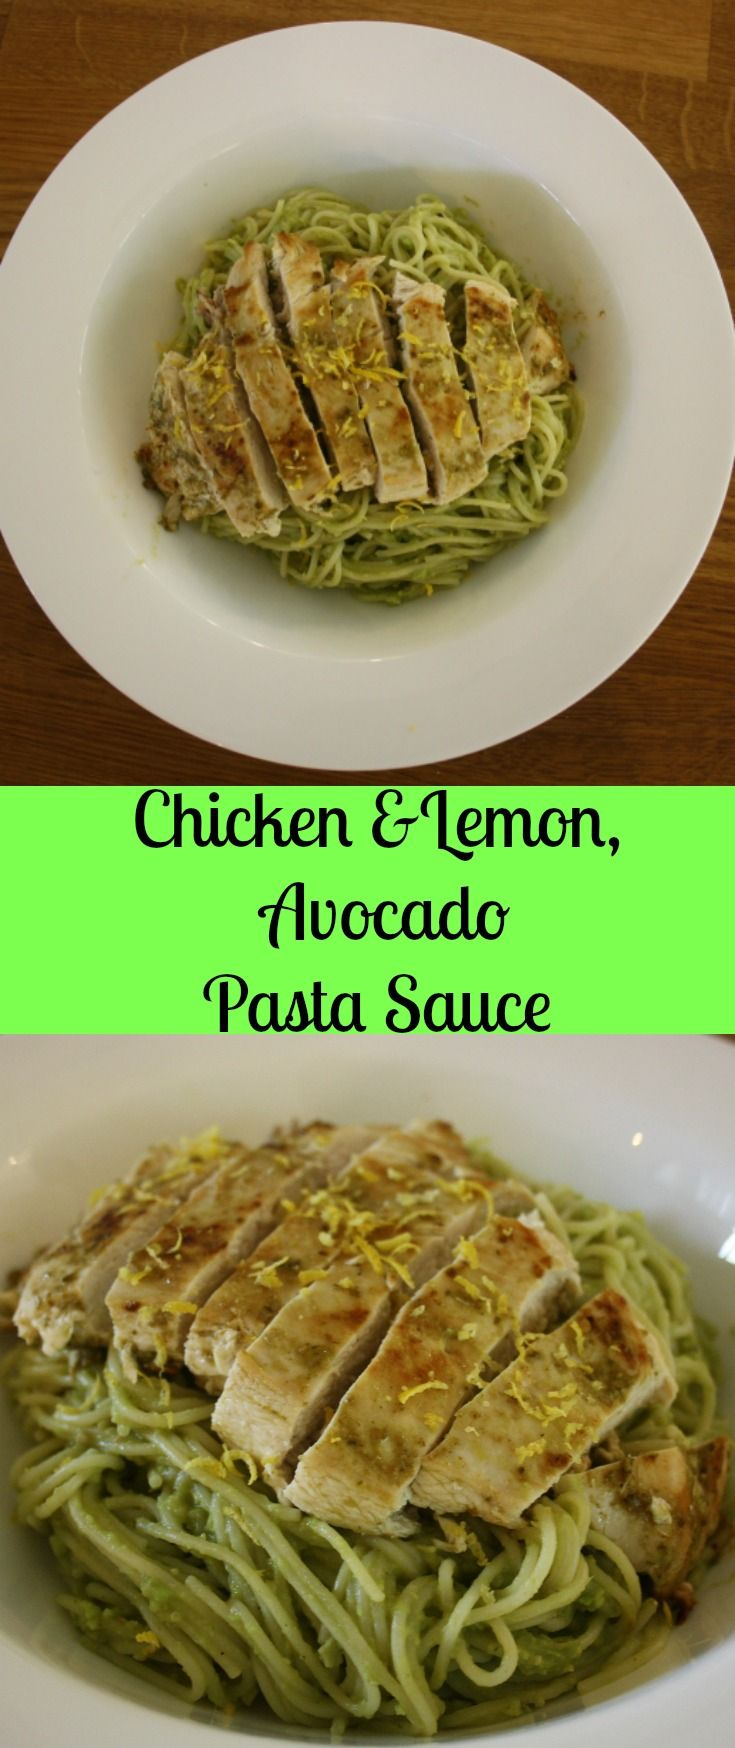 Avocado Pasta Sauces on Pinterest | Avocado Pasta, Creamy Avocado ...